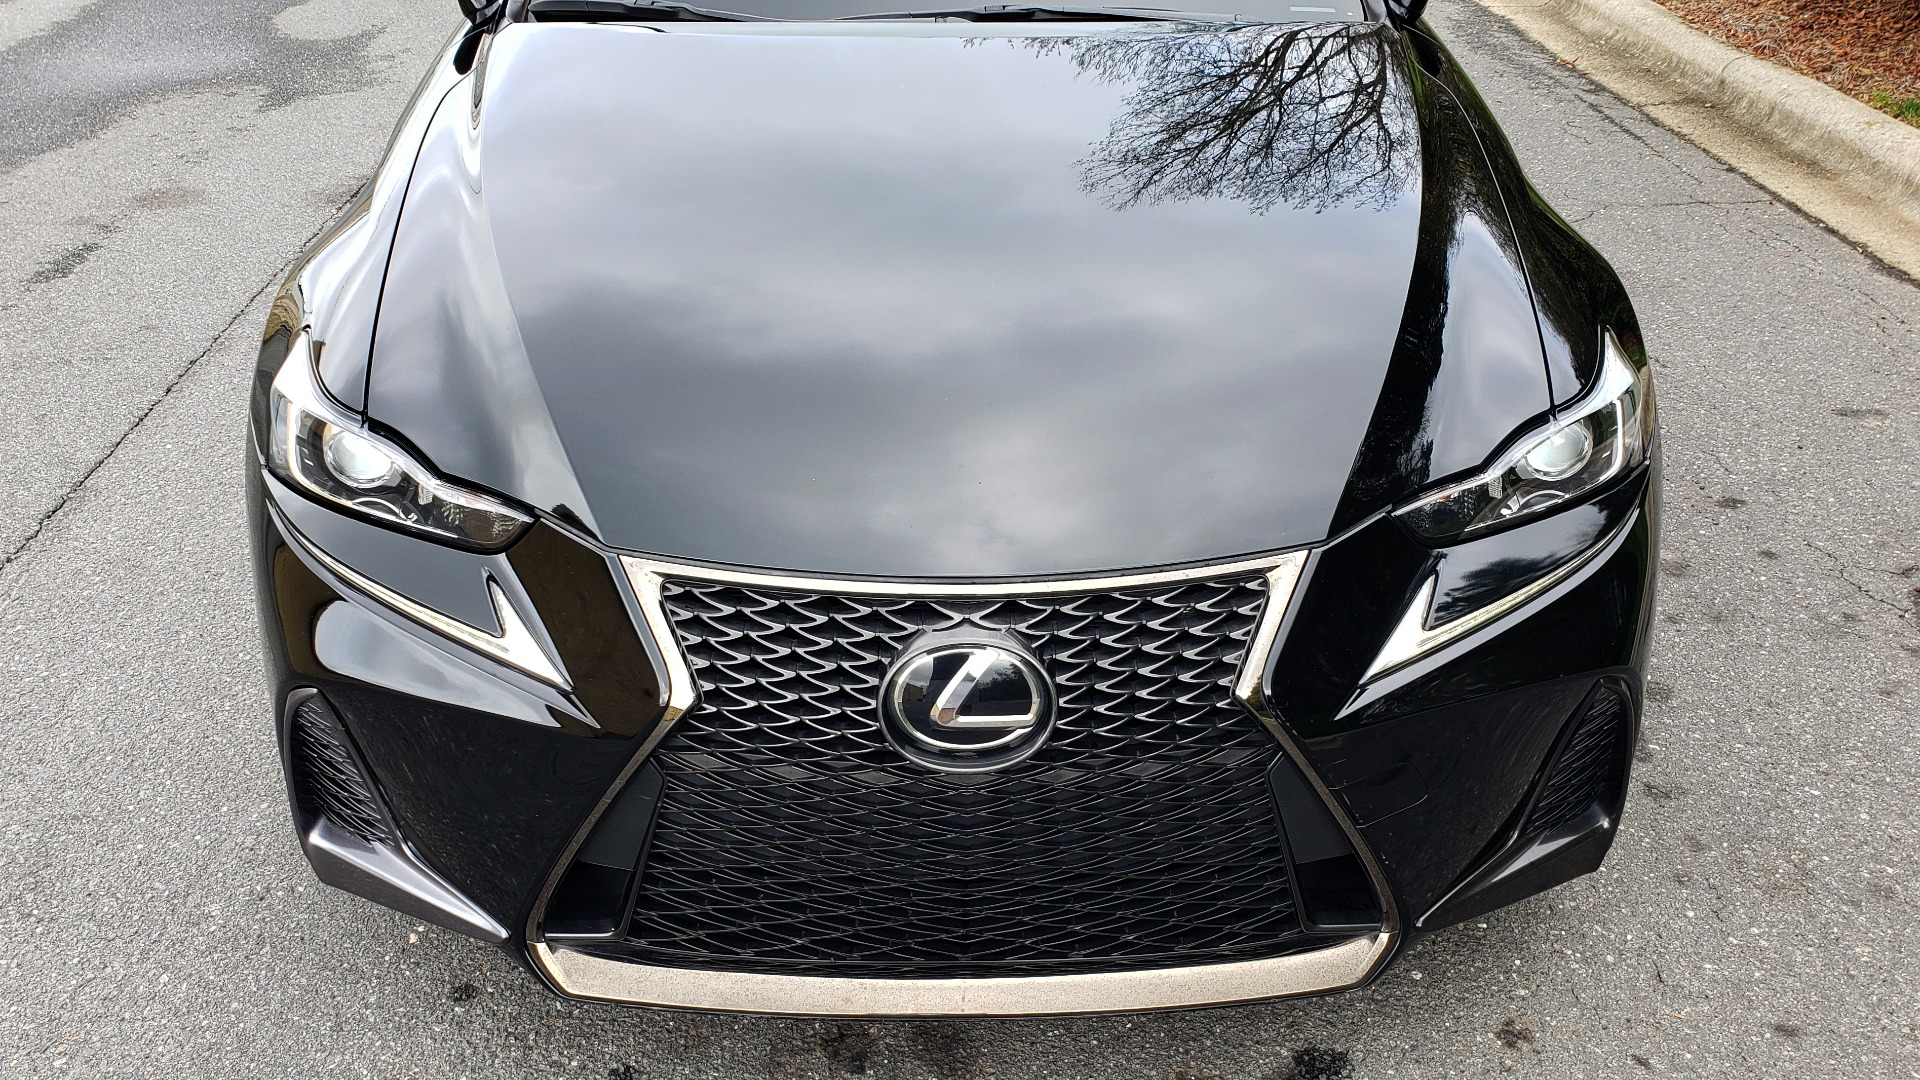 Used 2017 Lexus IS 200T F-SPORT / SUNROOF / REARVIEW / VENT SEATS for sale Sold at Formula Imports in Charlotte NC 28227 16